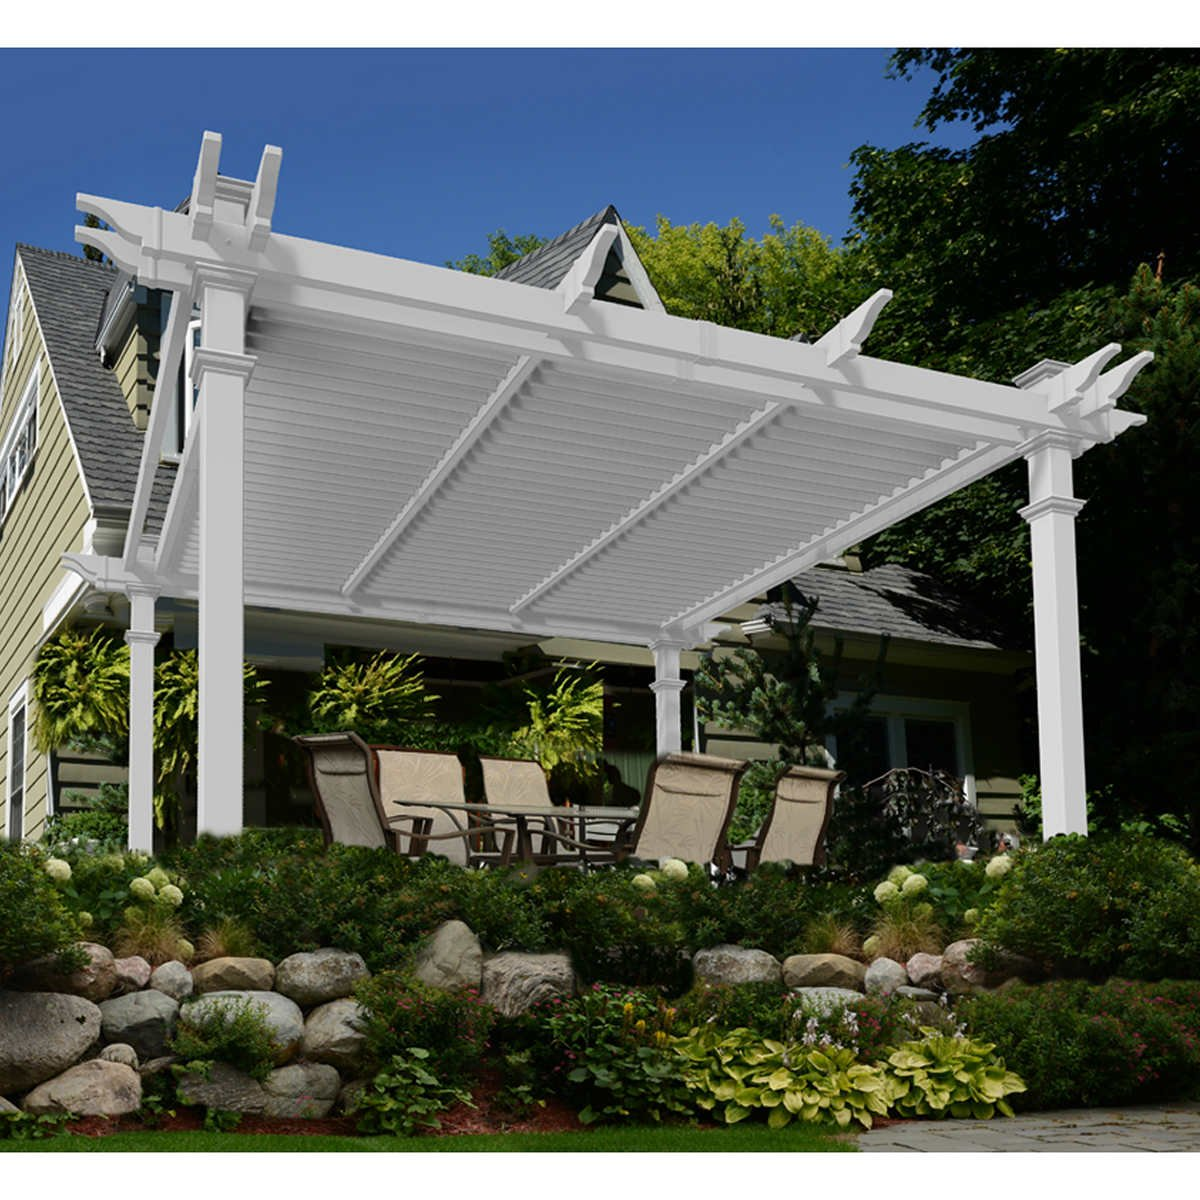 amazing backyard gazebos that we can actually own